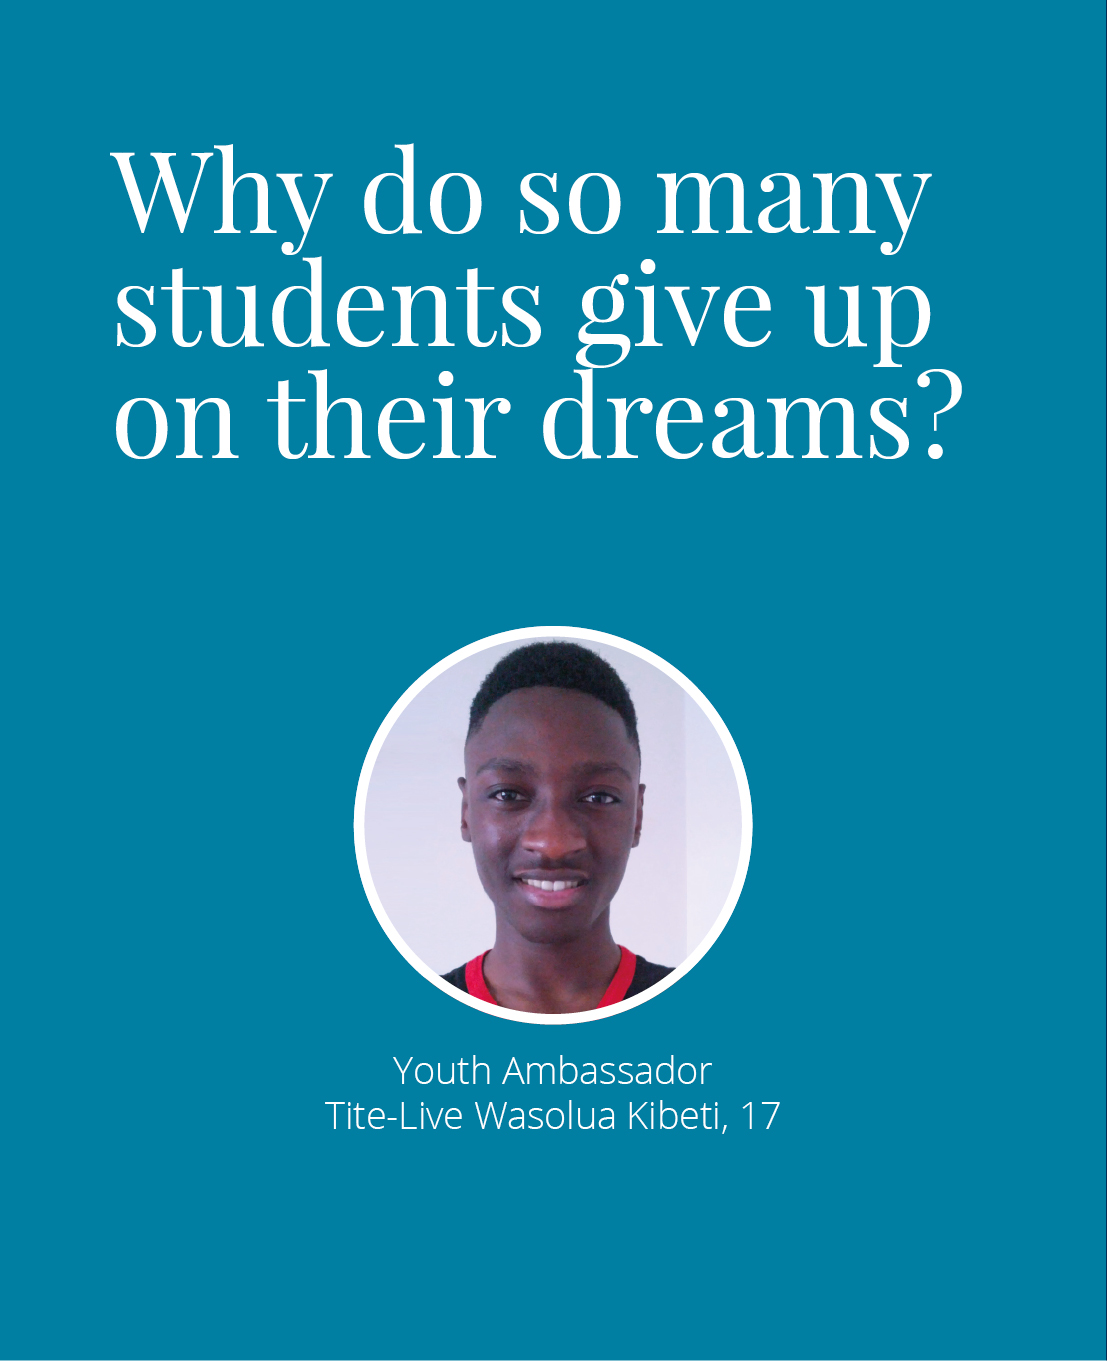 Why do so many students give up on their dreams?